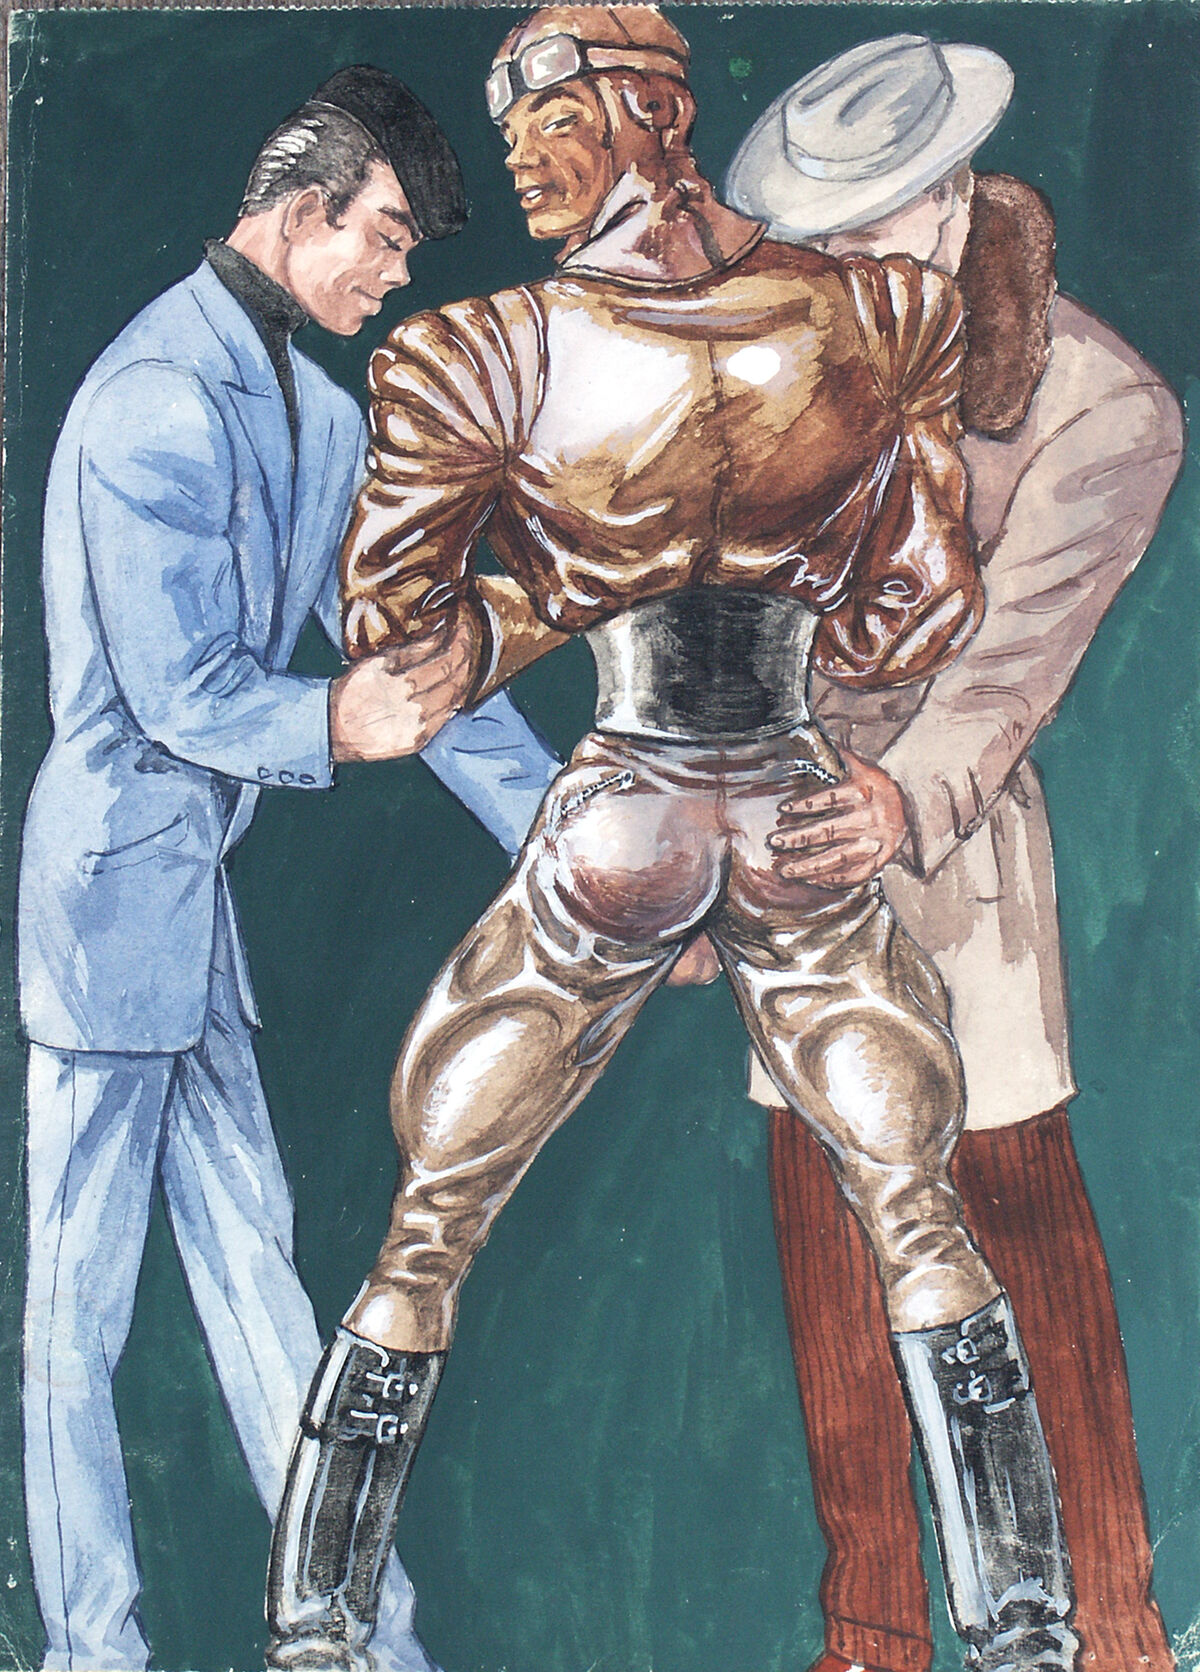 Tom of Finland, Untitled, 1947. Courtesy of the Tom of Finland Foundation and David Kordansky Gallery, Los Angeles, CA.